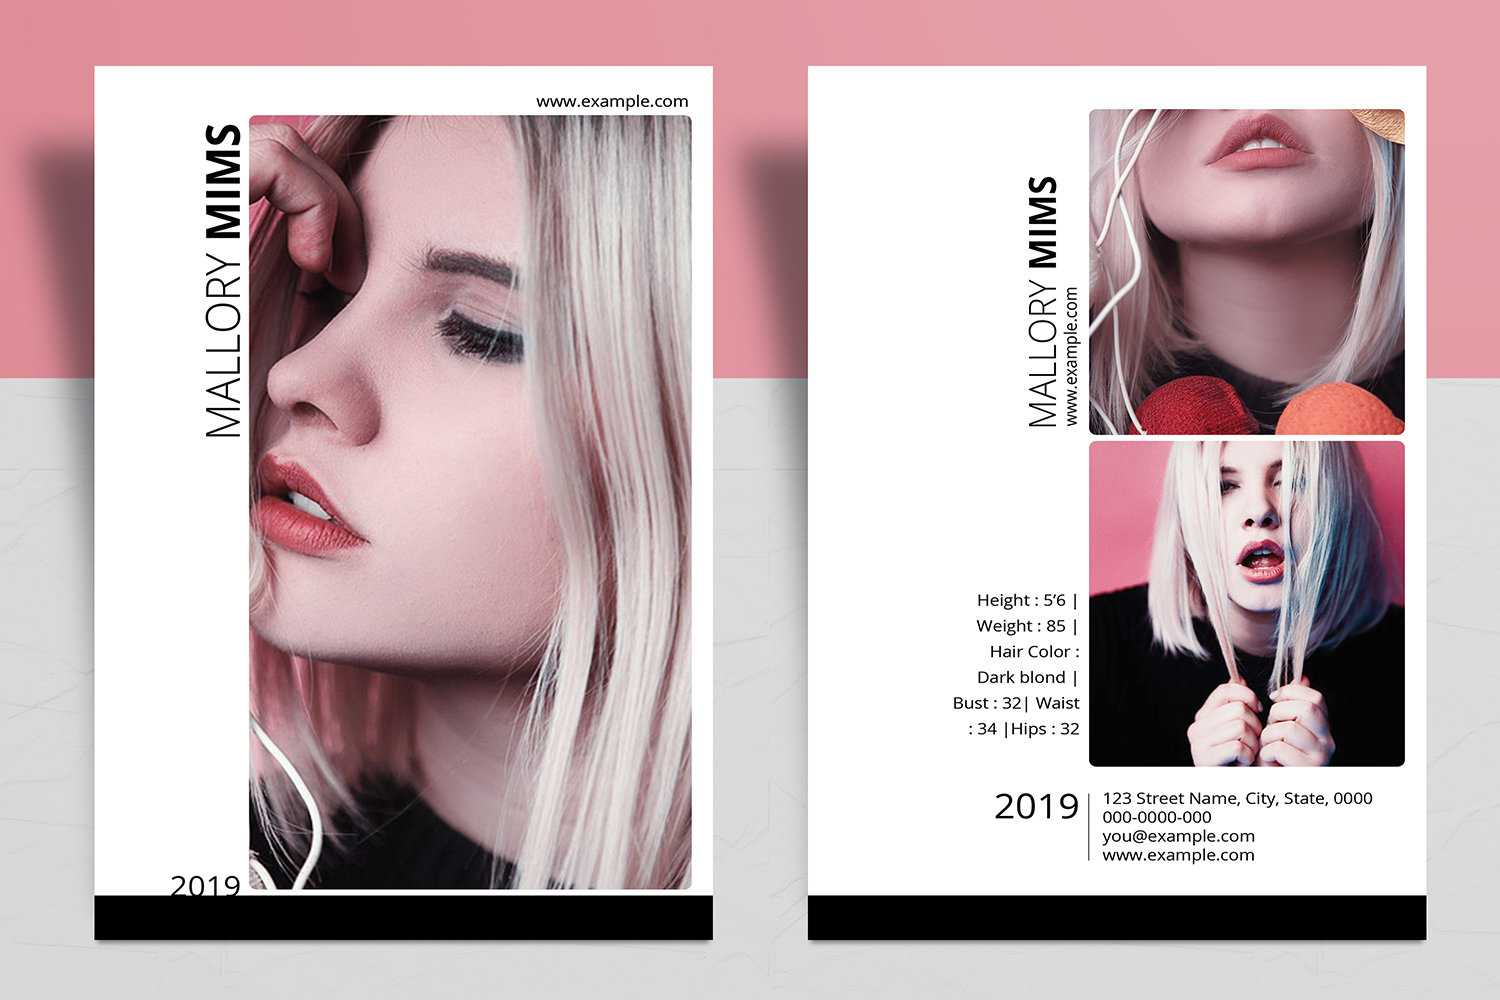 Modeling Comp Card Template | Model Comp Card, Composite Card | Ms Word &  Photoshop Template , Instant Download V17 Intended For Comp Card Template Download